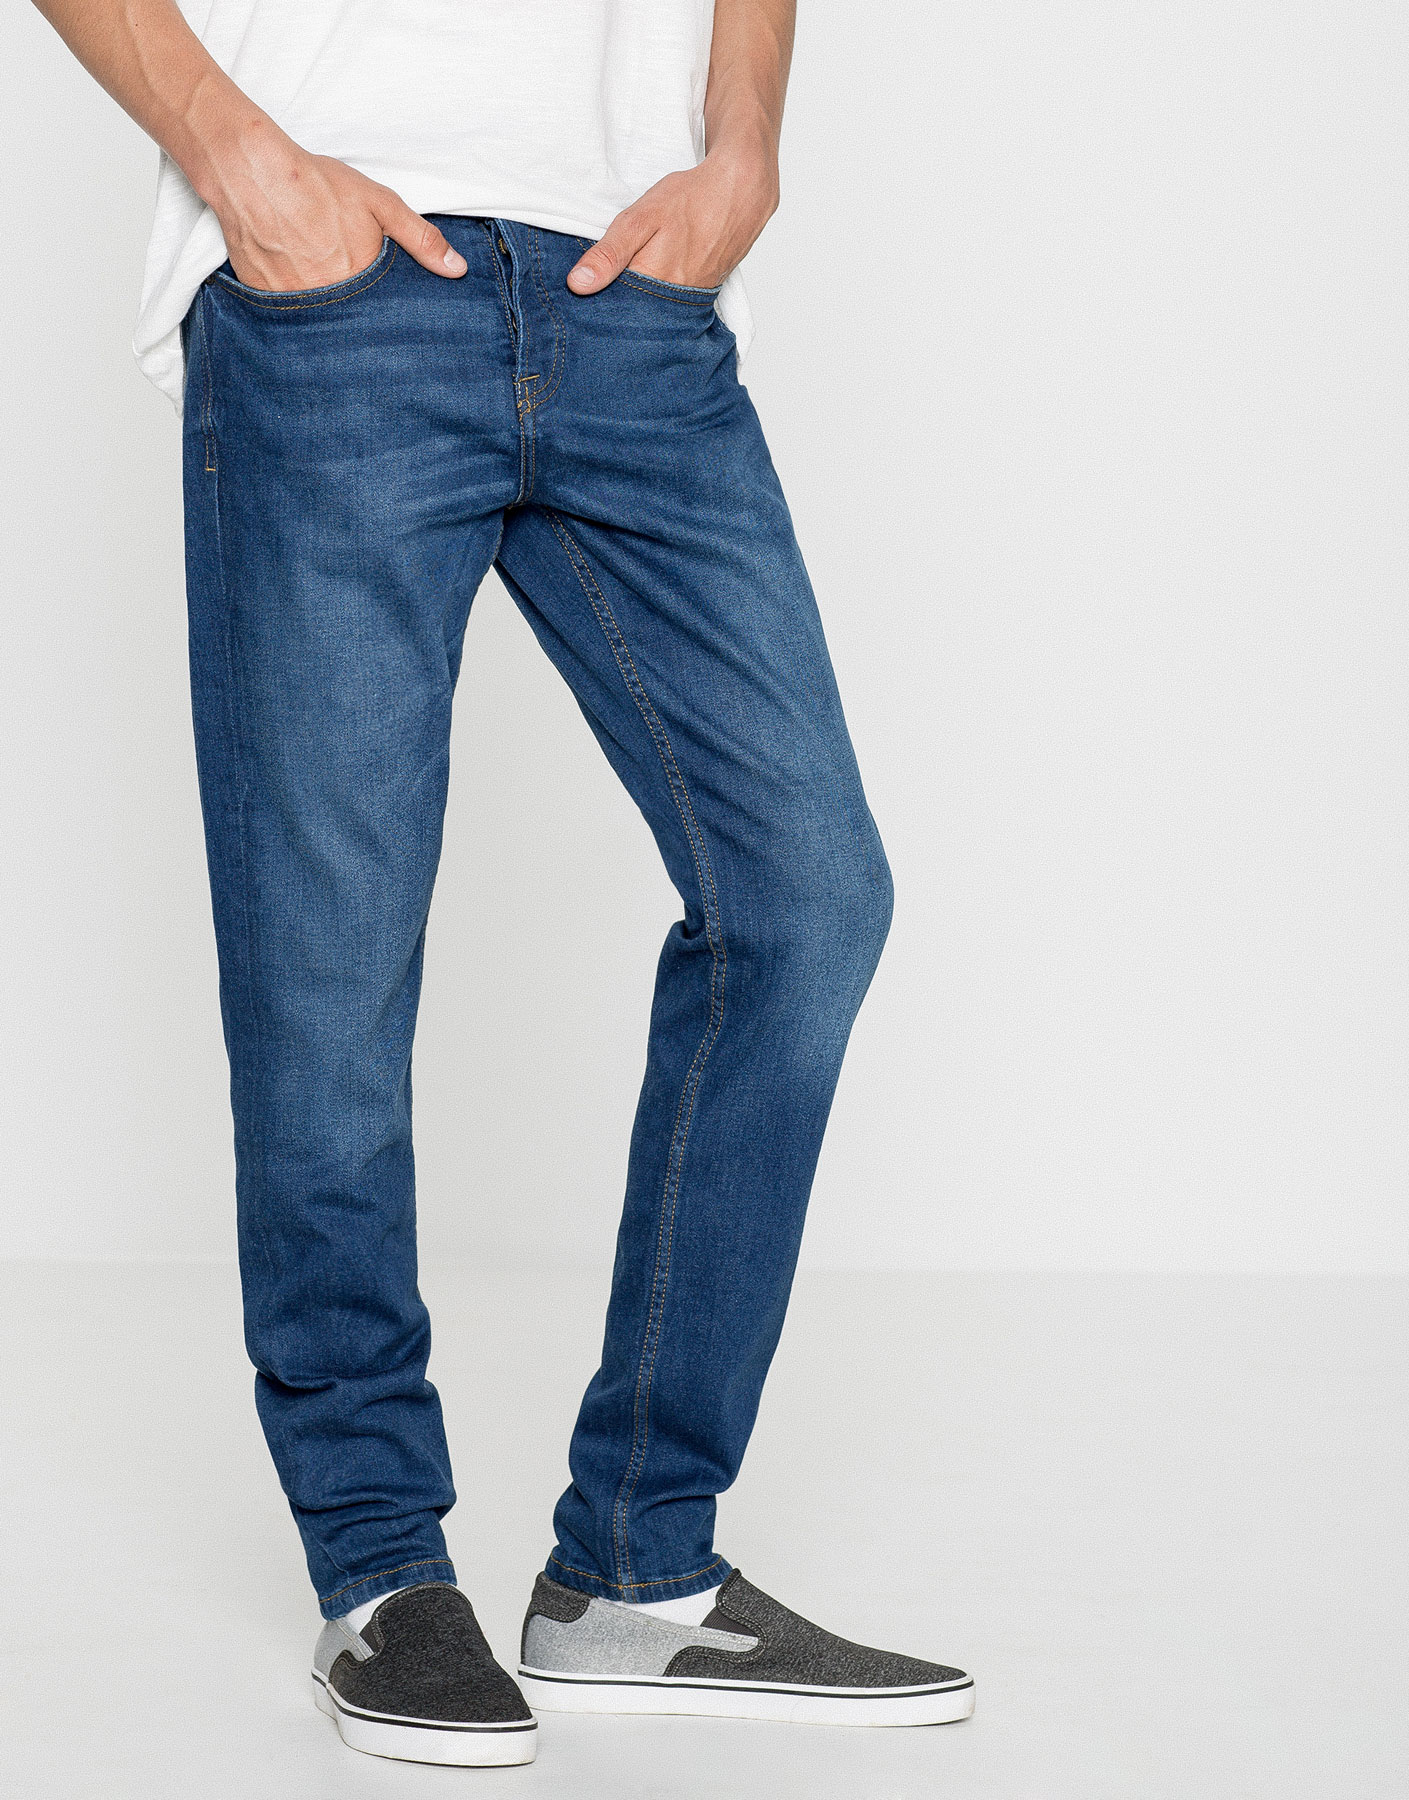 Jeans slim fit lavado medio